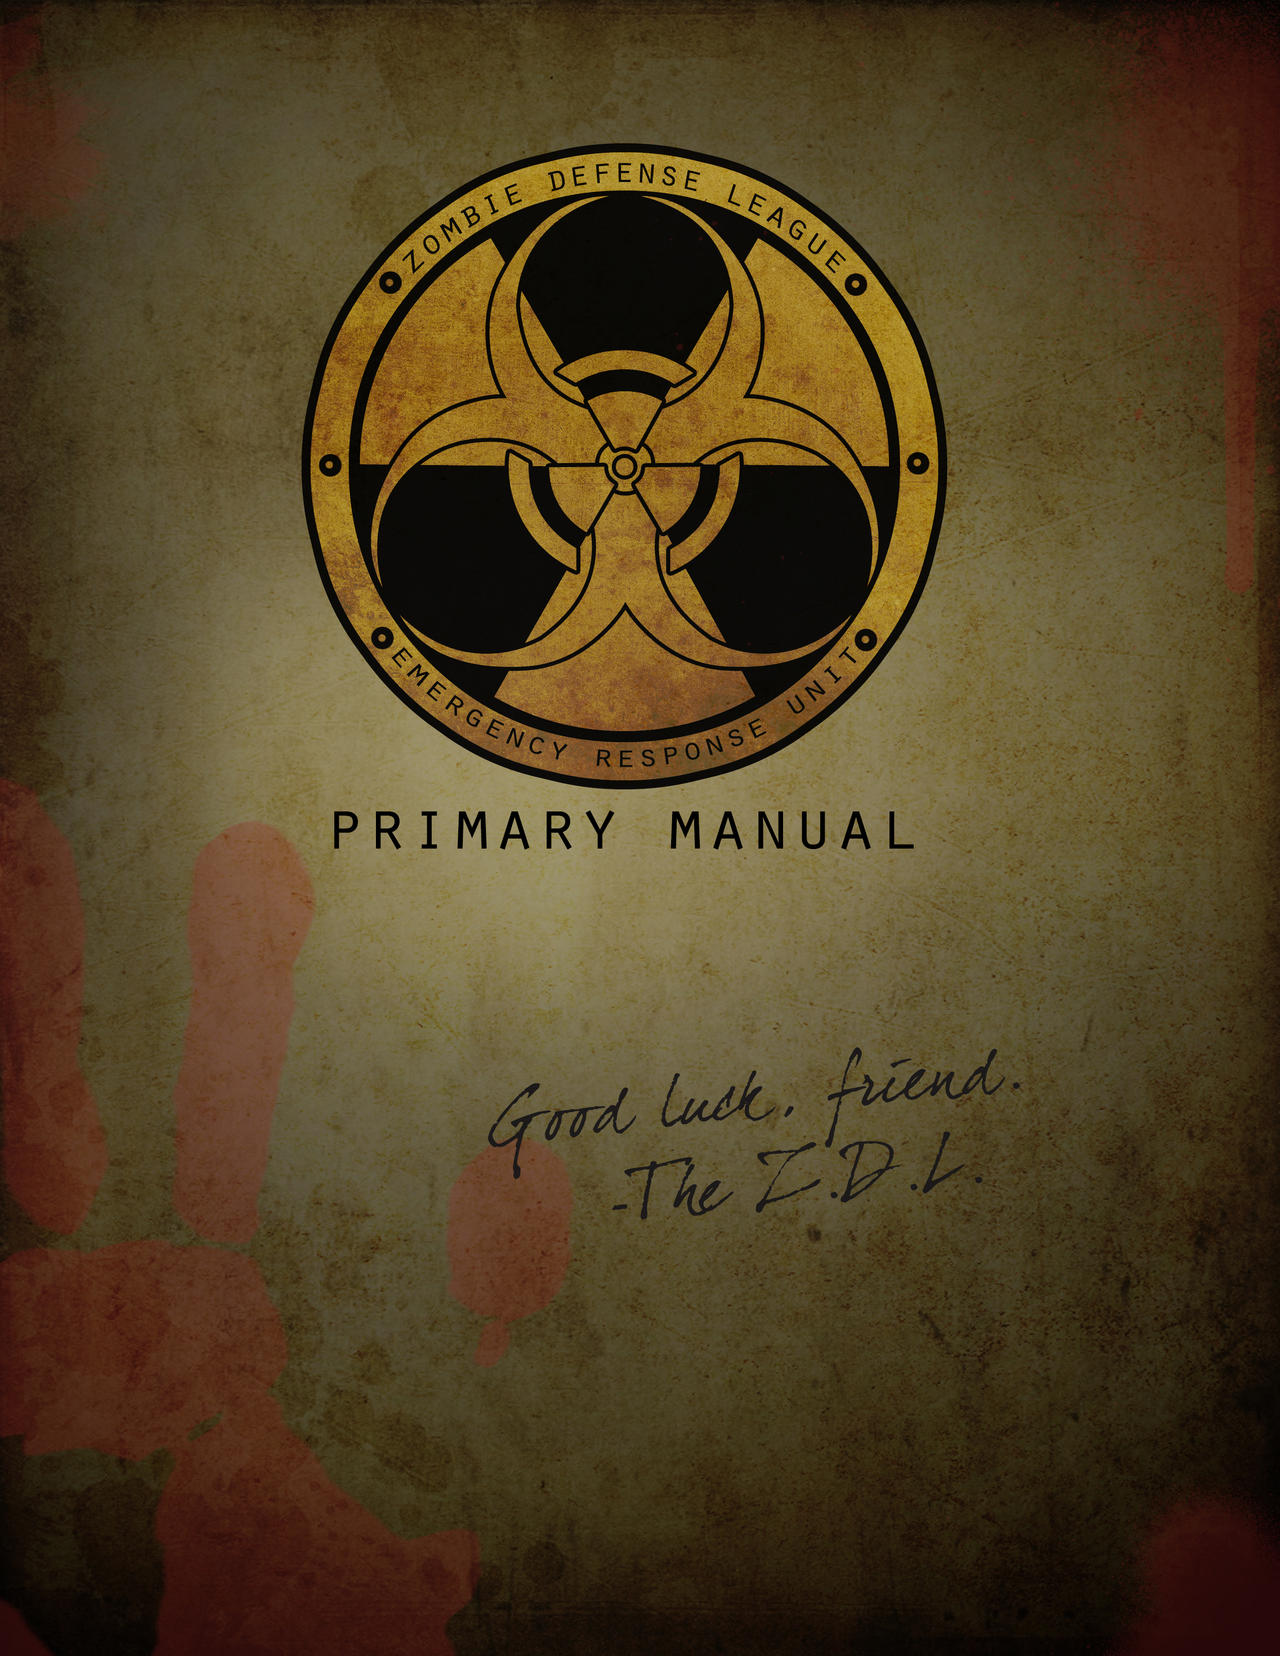 Zombie Defense League Manual by Treybacca